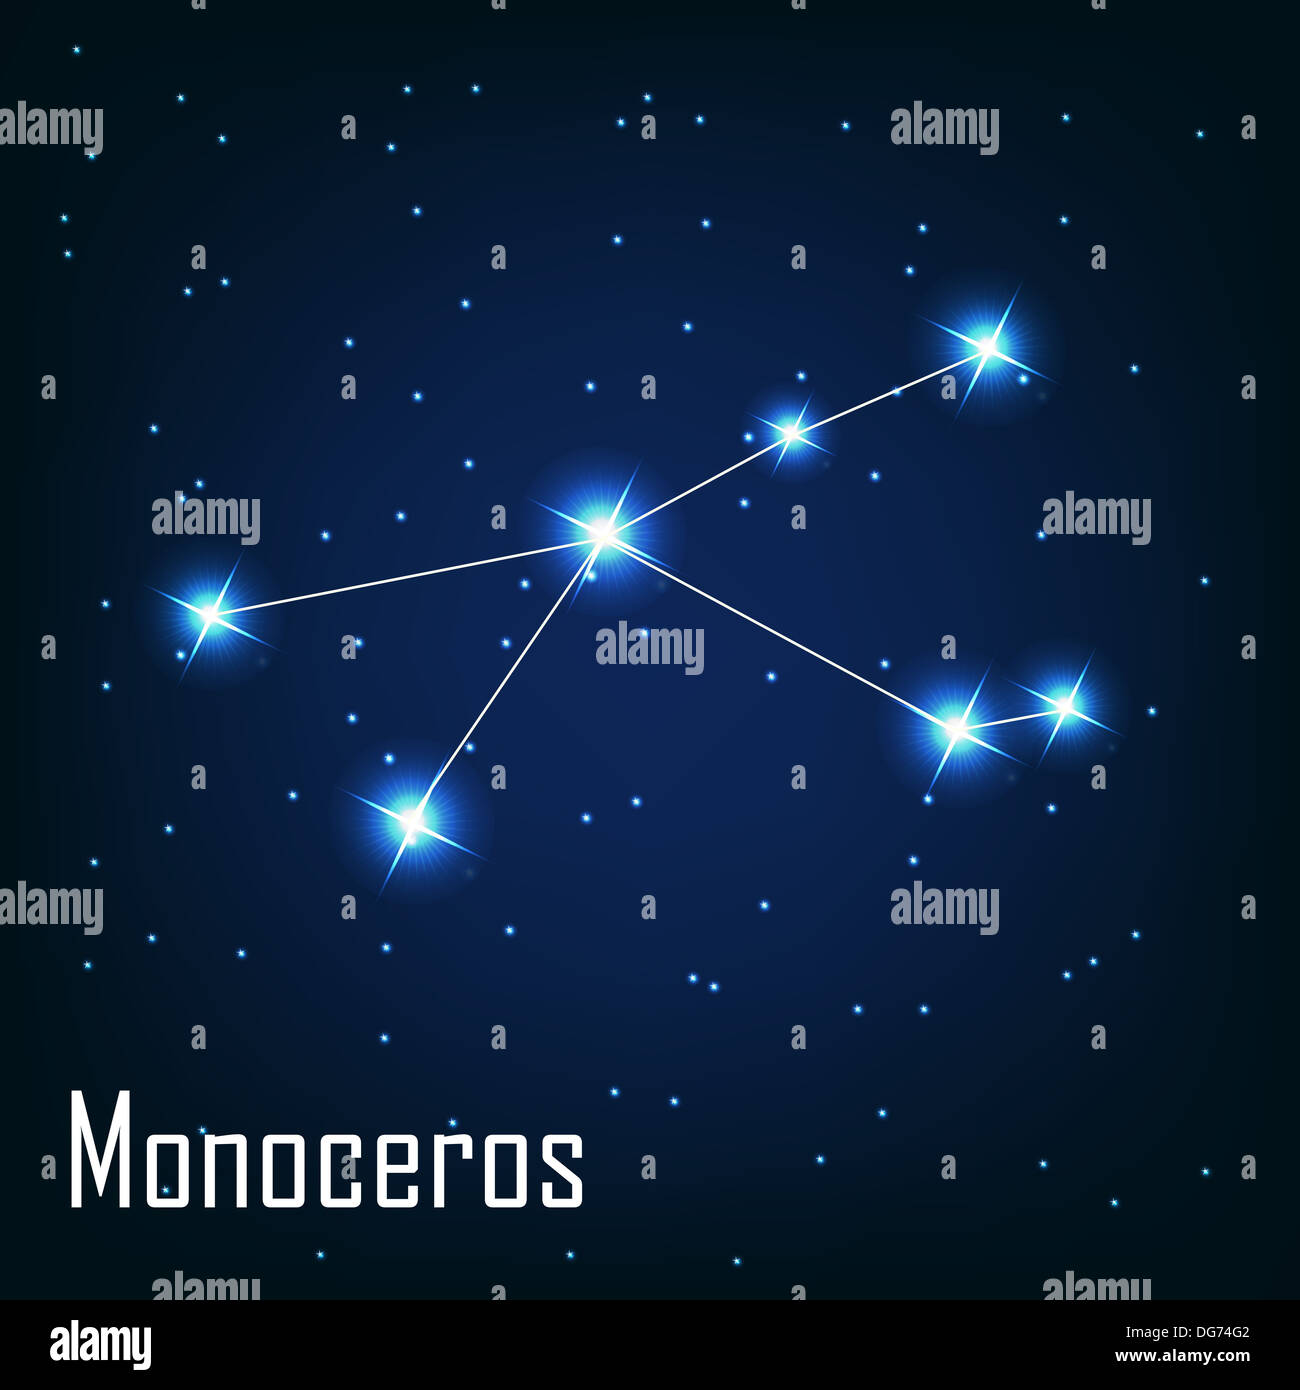 The constellation ' Monoceros' star in the night sky. Vector ill - Stock Image